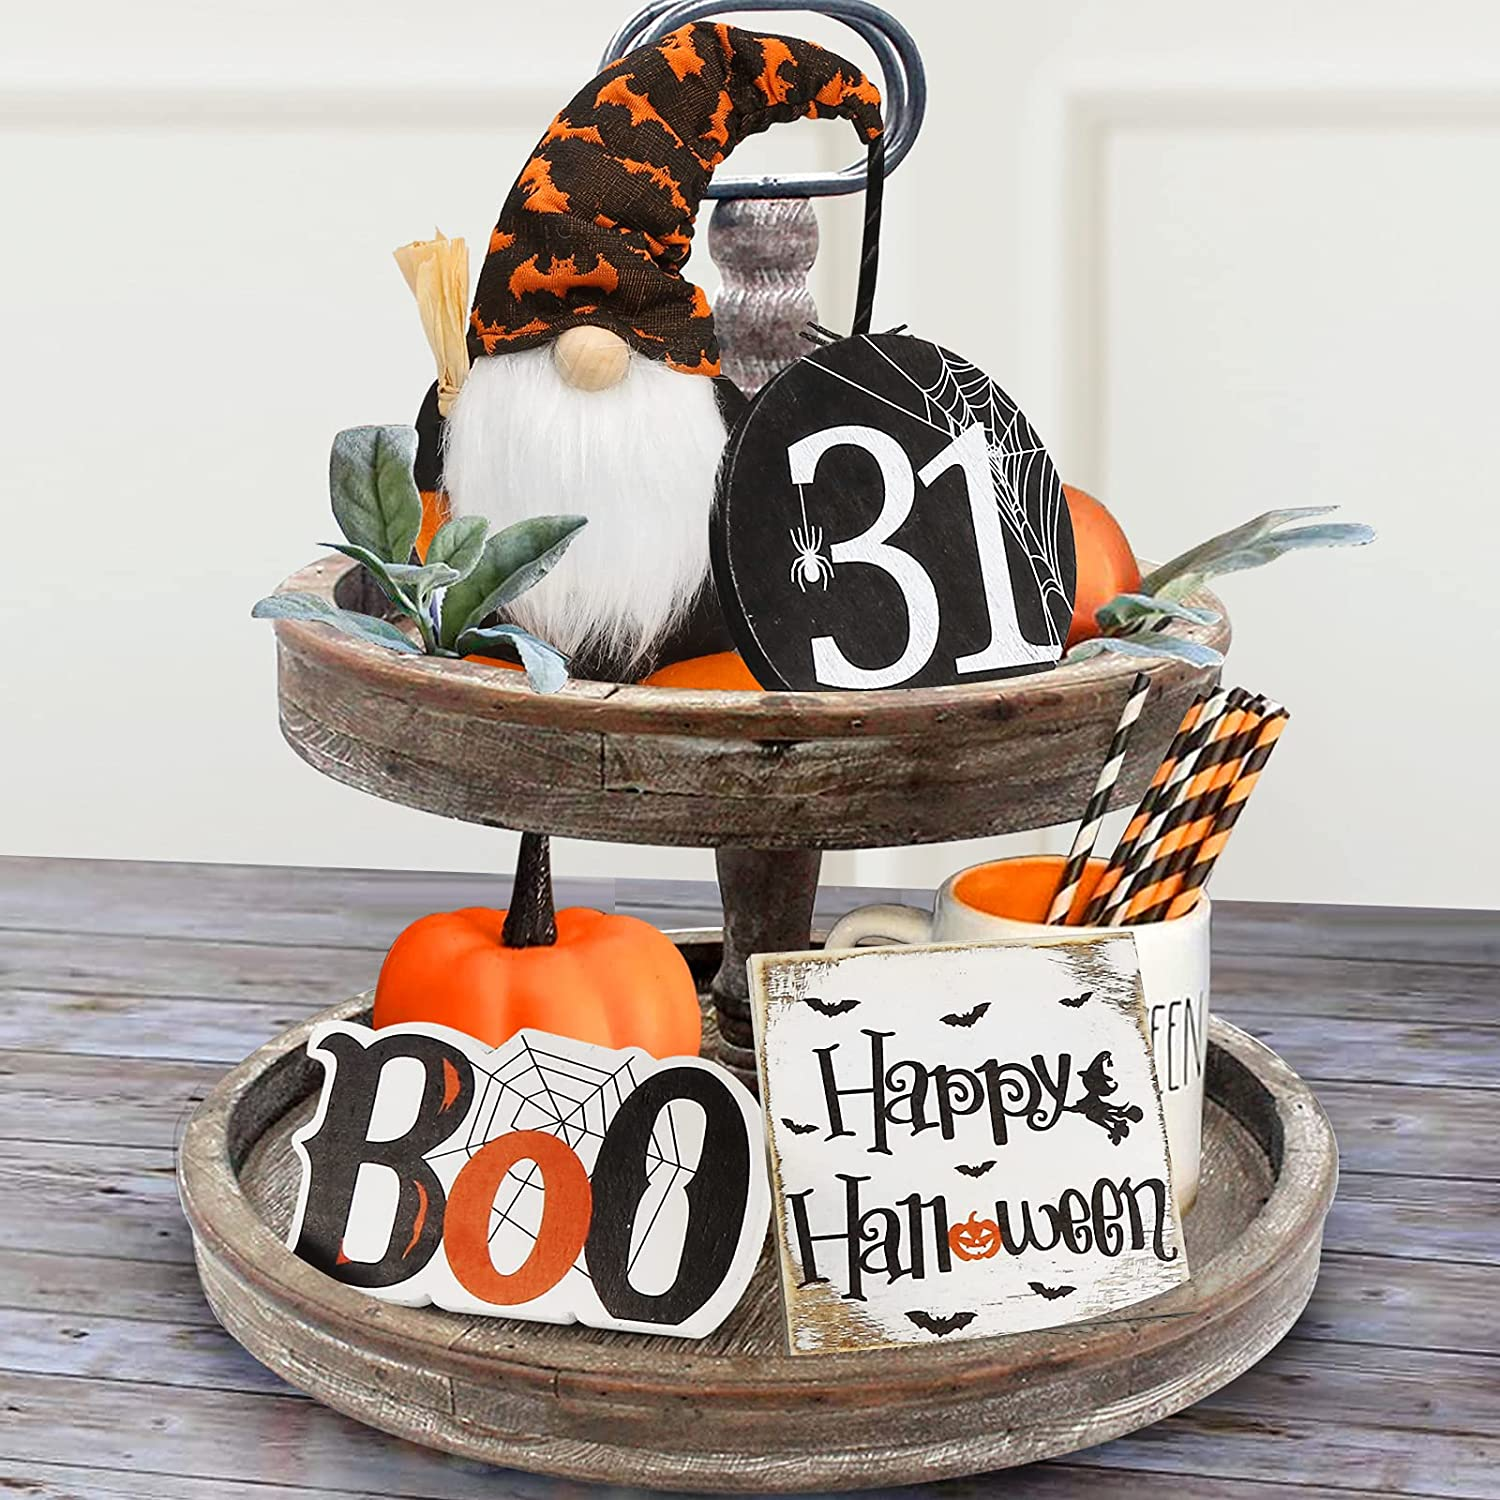 Halloween Decor - Halloween Decorations - Boo Happy Halloween Wooden Signs & Cute Gnomes Plush with Bats and Spider - Farmhouse Rustic Tiered Tray Decor Items for Home Table House Room